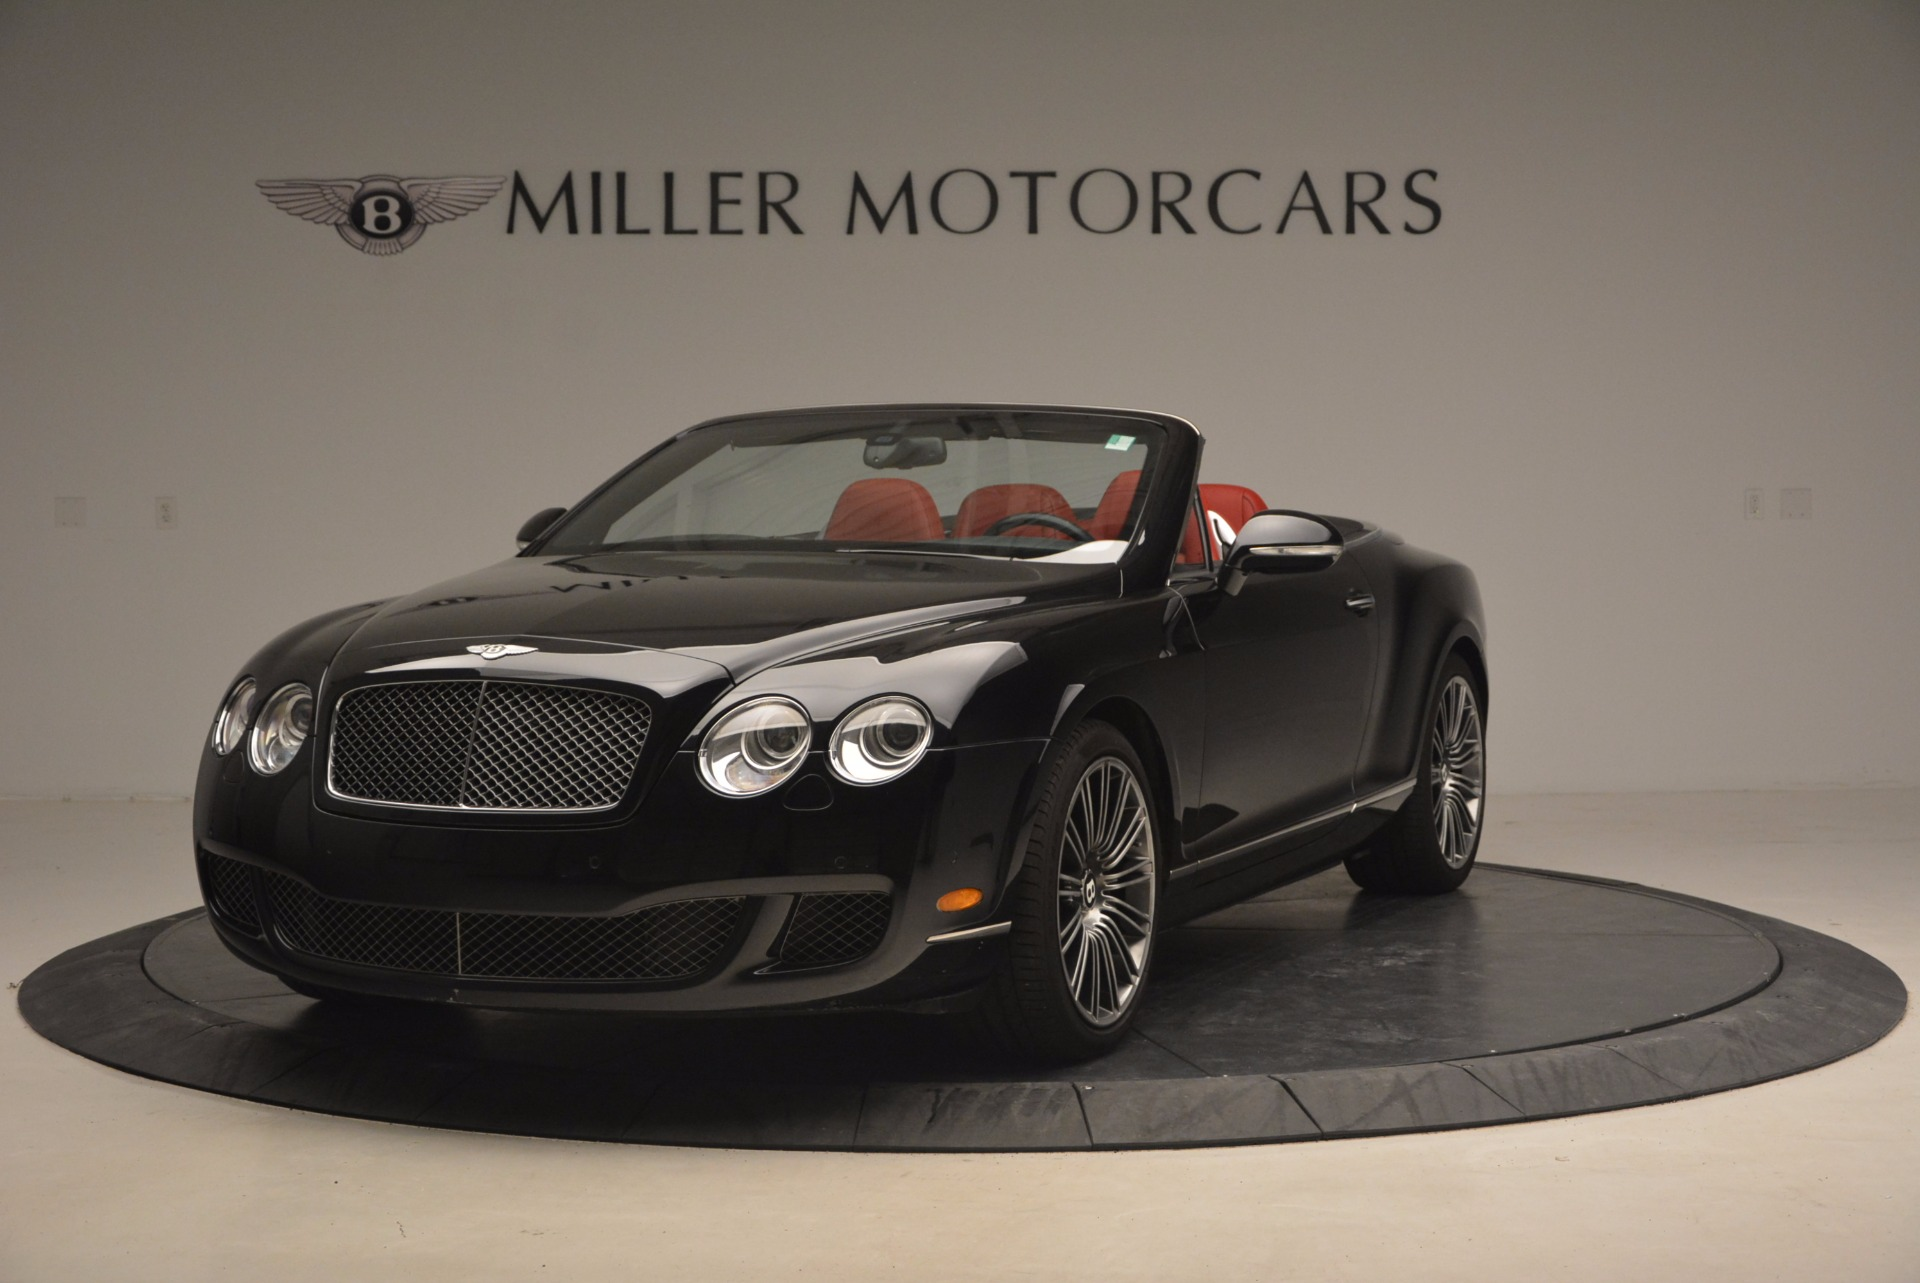 Used 2010 Bentley Continental GT Speed for sale Sold at Pagani of Greenwich in Greenwich CT 06830 1